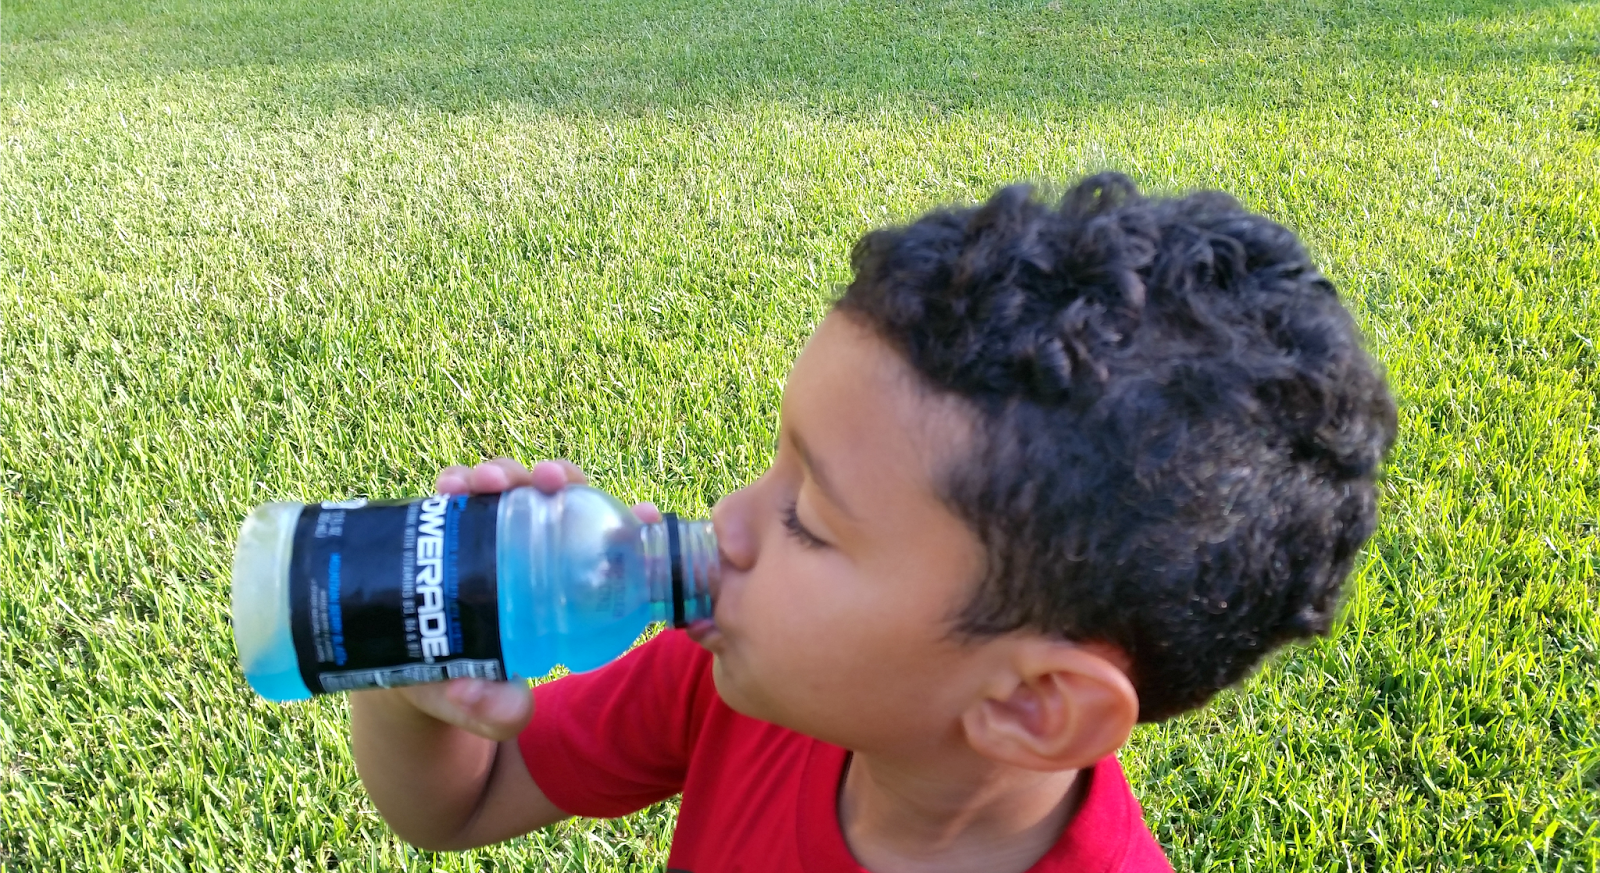 Hydrate your little athletes like the big guys with Powerade! #cbias #shop